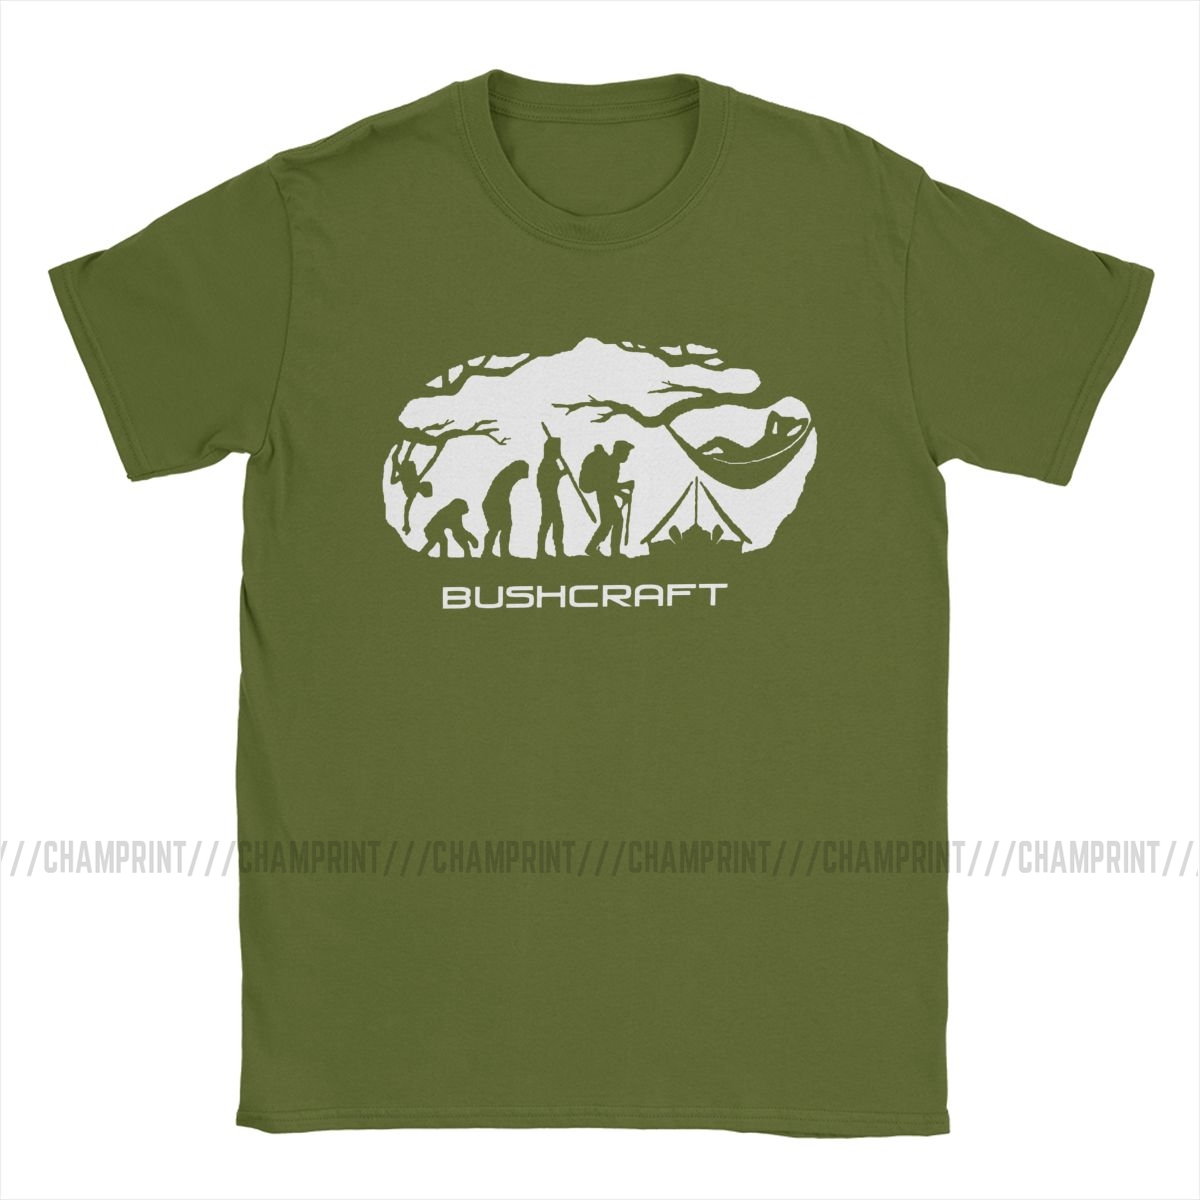 Bushcraft Survival Hammocking Evolution Print T Shirt Men T-Shirt Crewneck Camping Mountain Travel Wild Tees Short Sleeve Tops